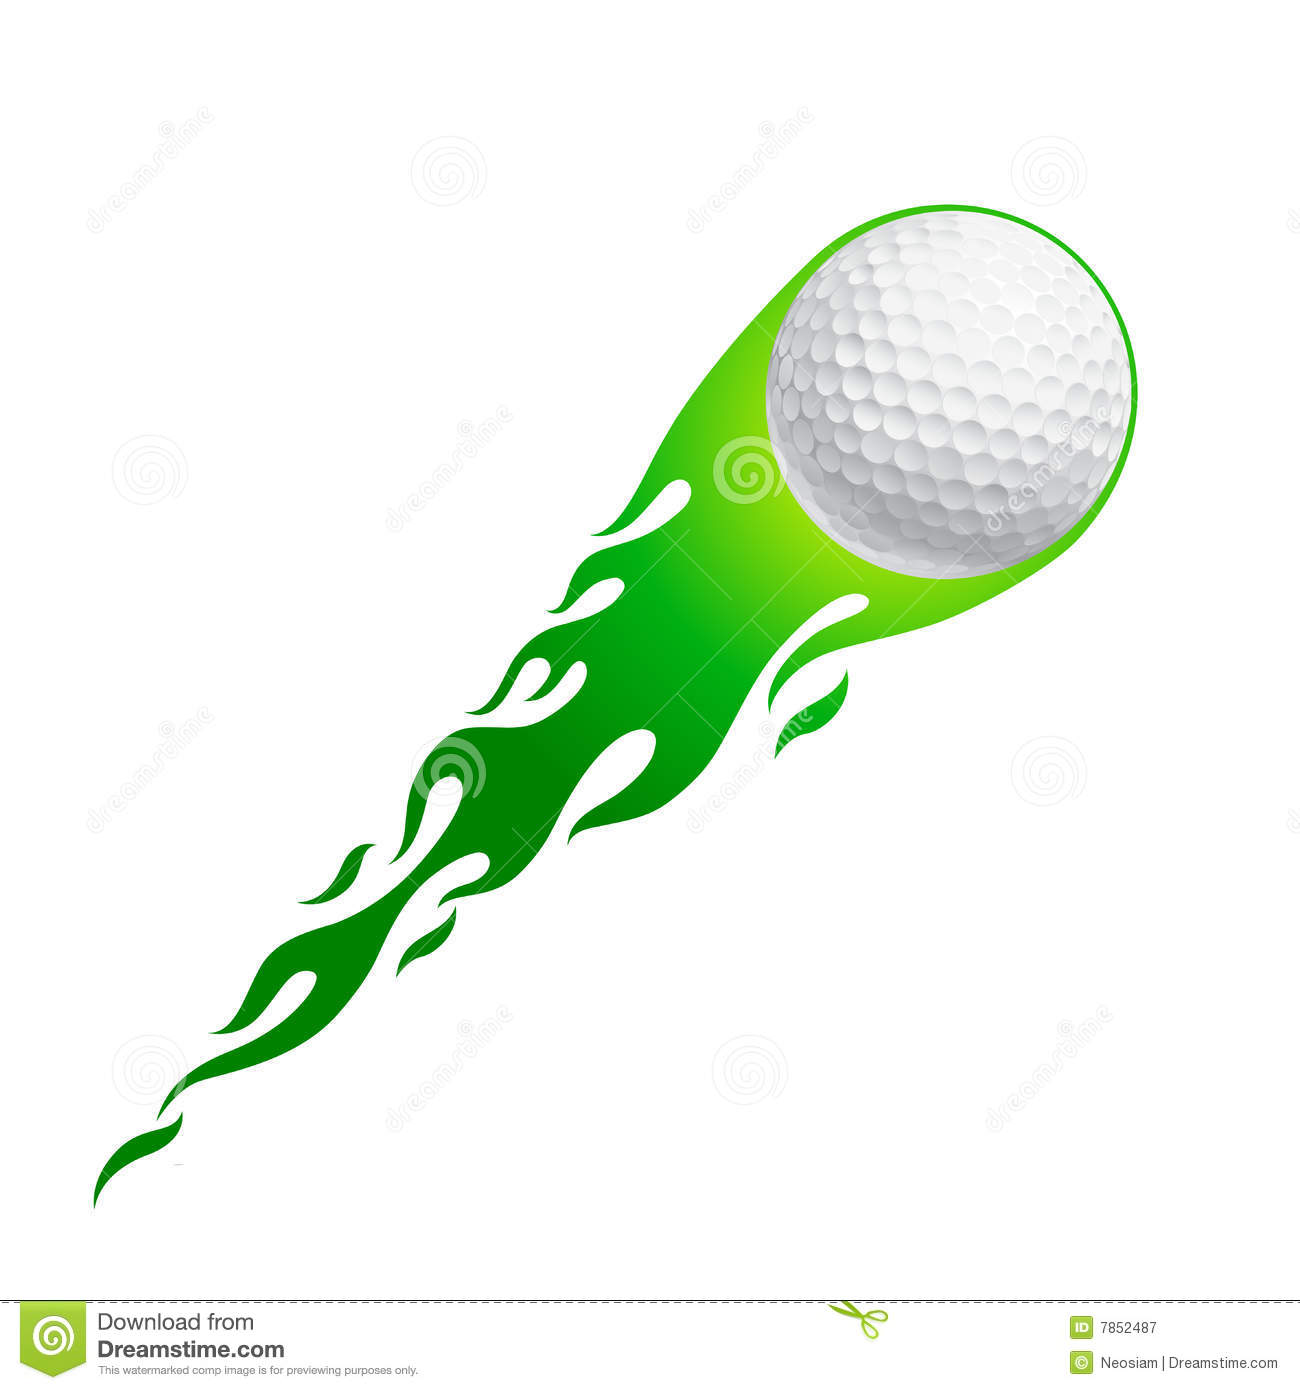 Flaming golf ball clipart picture library stock Flying golf ball clipart - ClipartFest picture library stock